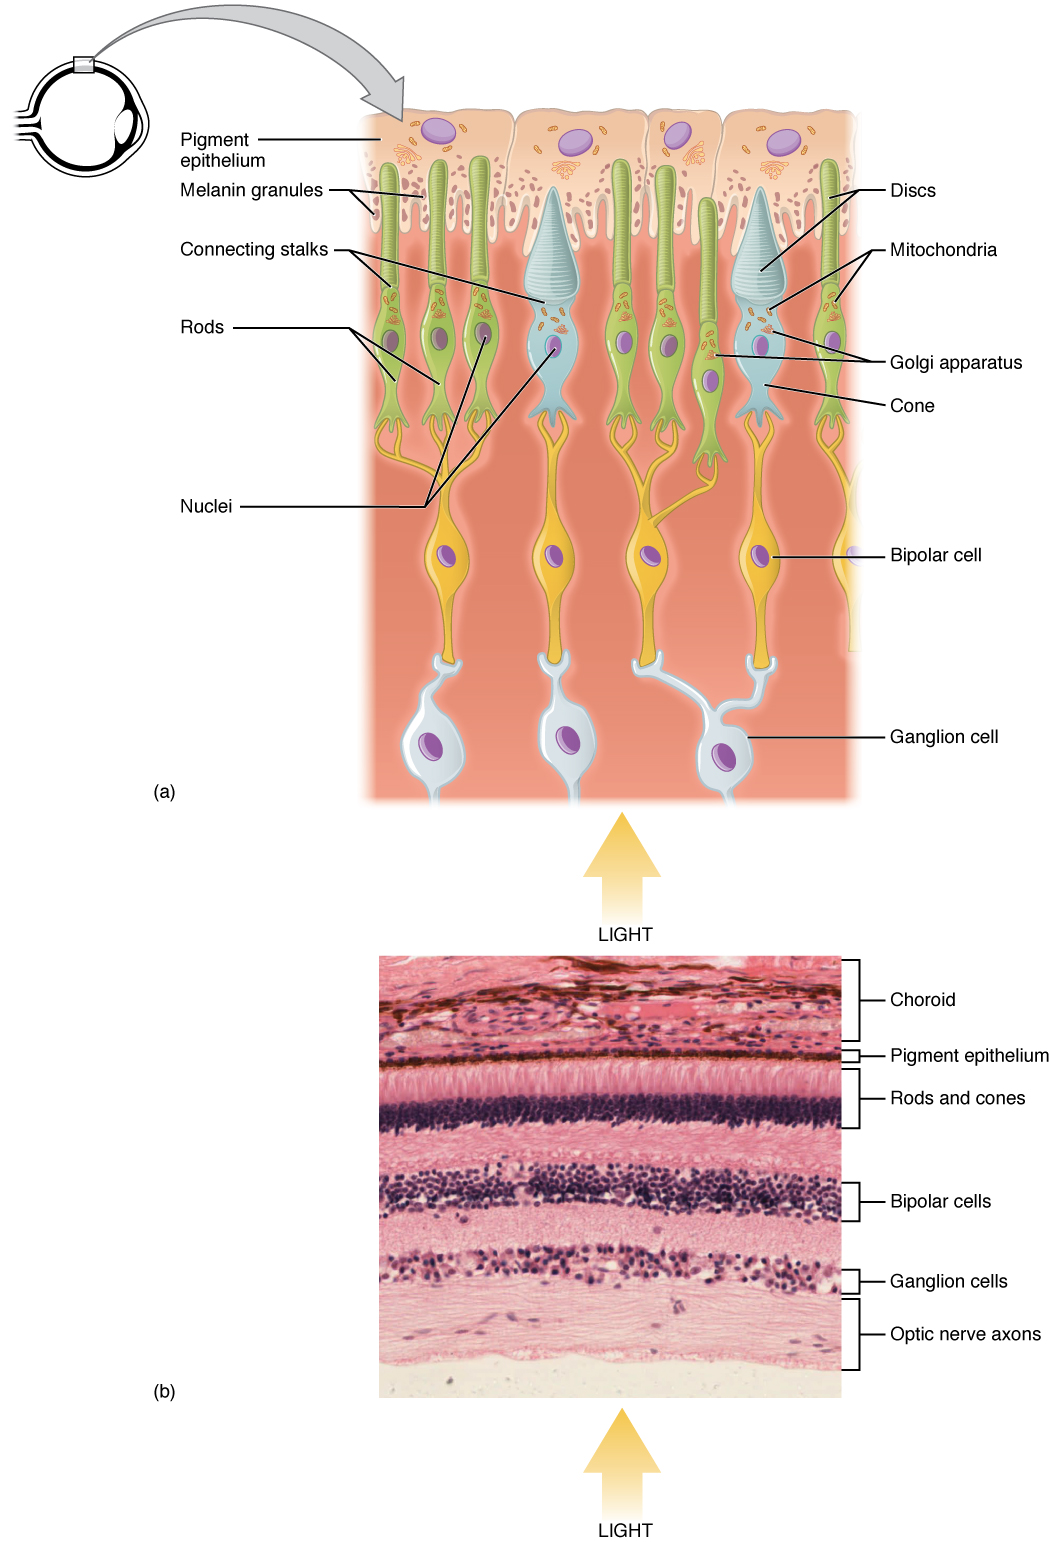 hight resolution of the top panel shows the cellular structure of the different cells in the eye the